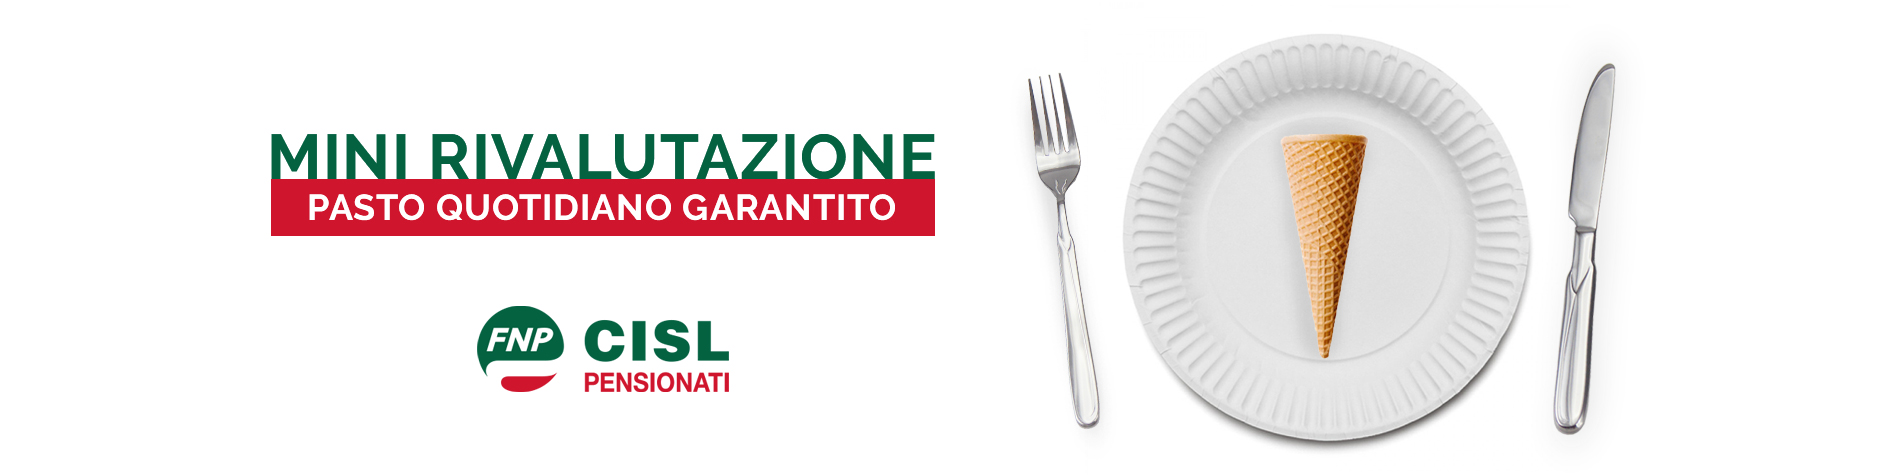 mini rivalutazione - pasto quotidiano garantito